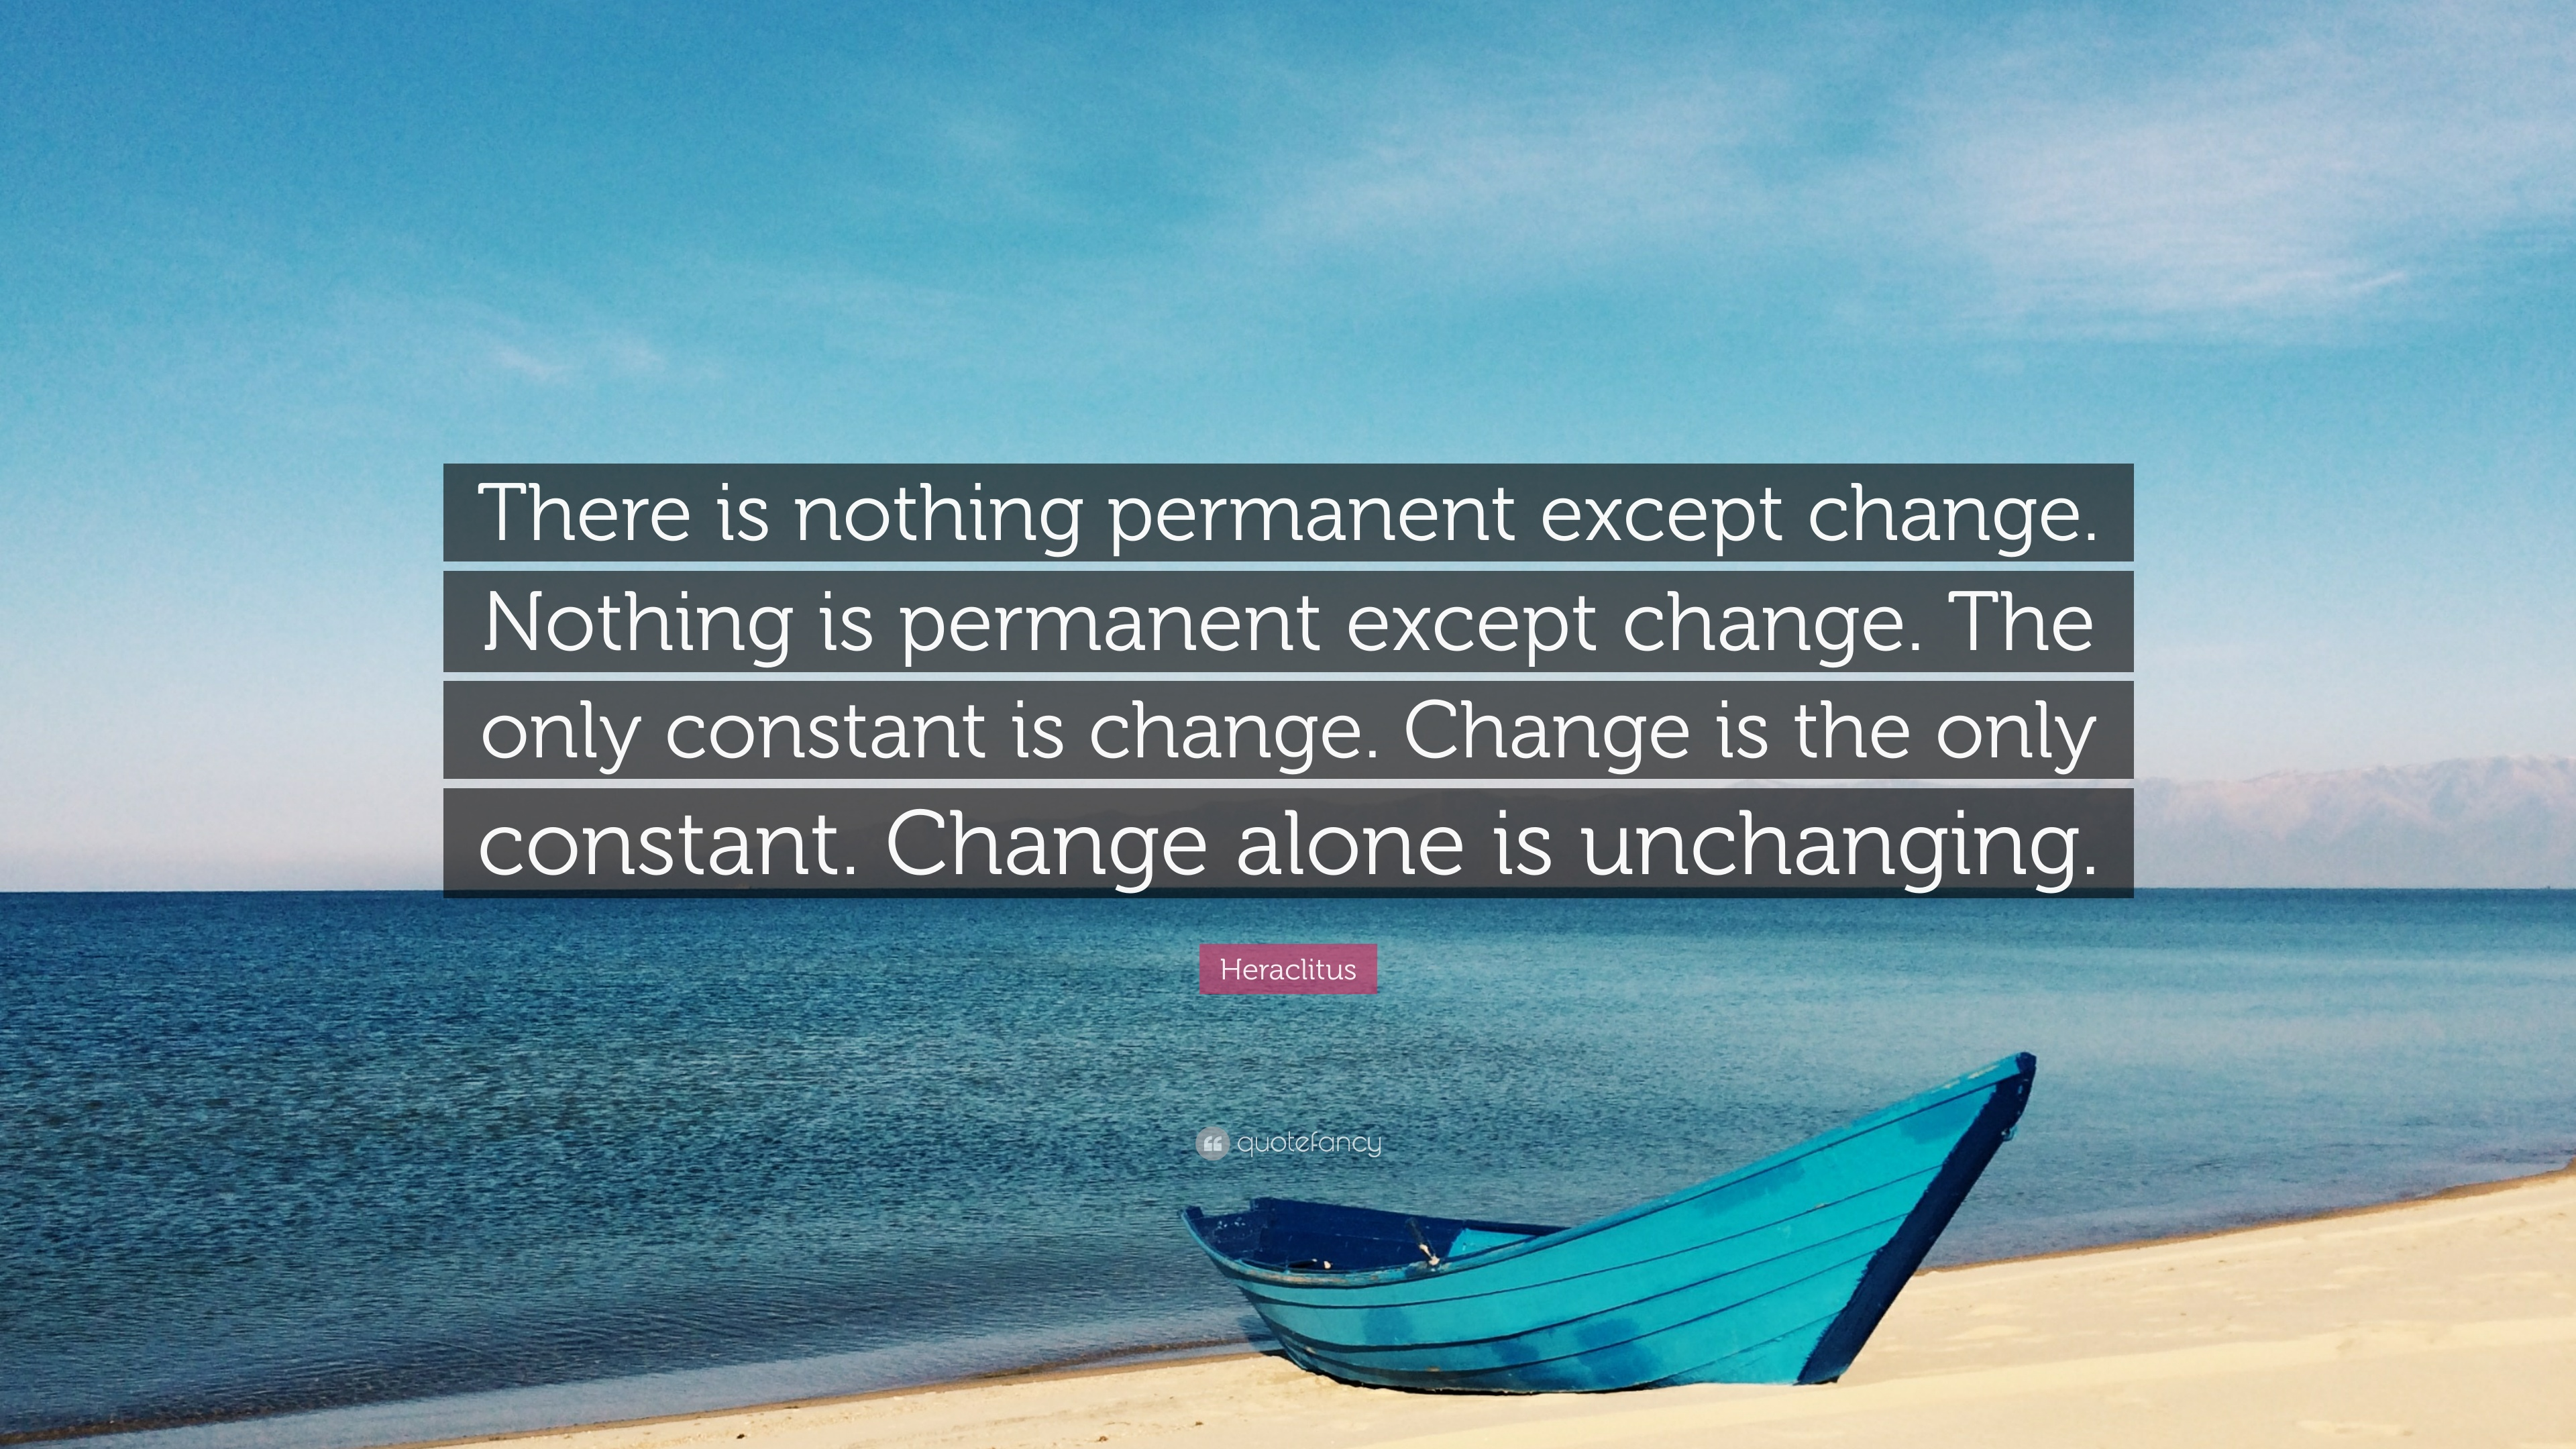 Image result for Change is the only constant. There is nothing permanent except change.